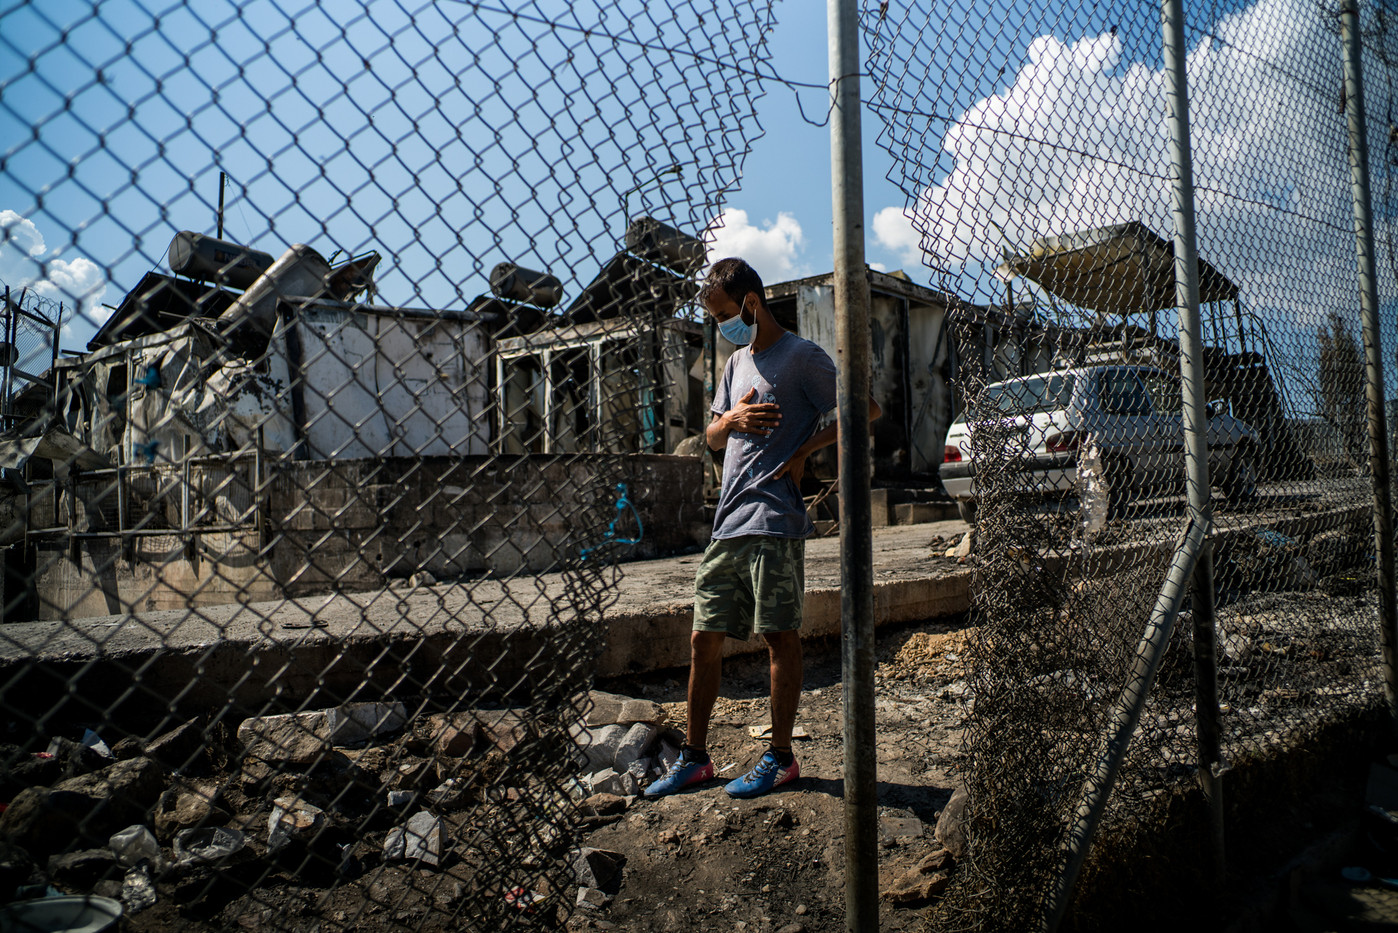 An Afghan migrant looks desolate at the remains of the Moria camp.